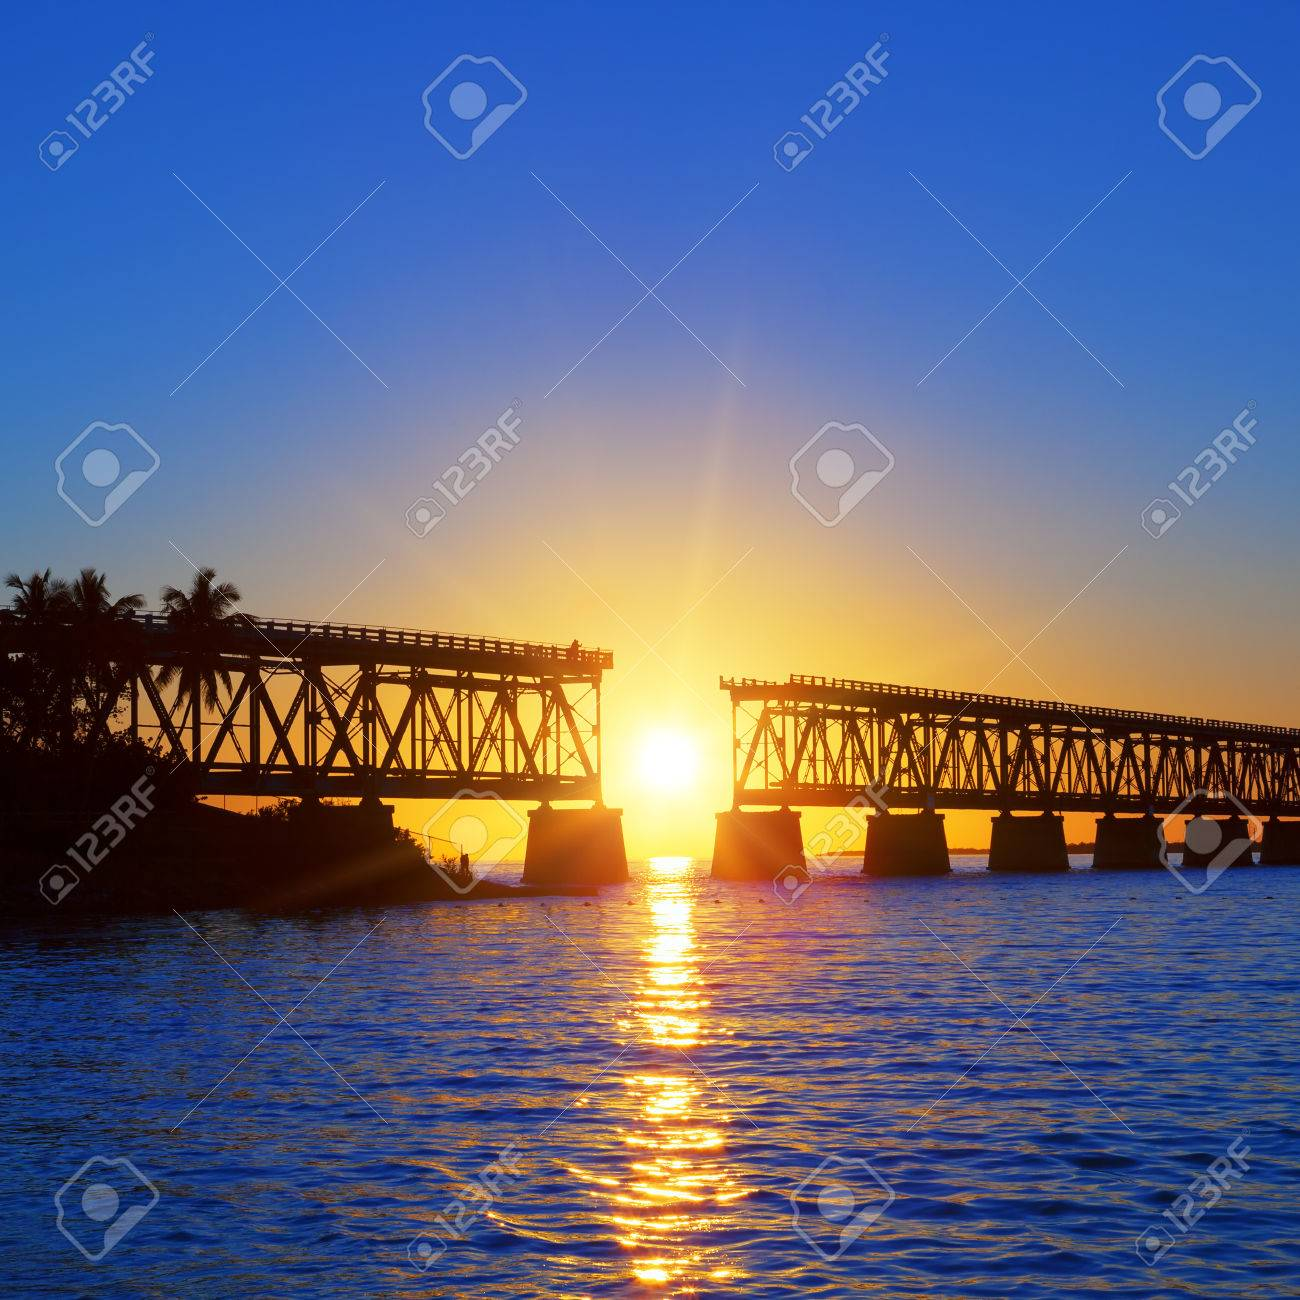 Colorful sunset with famous broken bridge, Keay West - 26406875